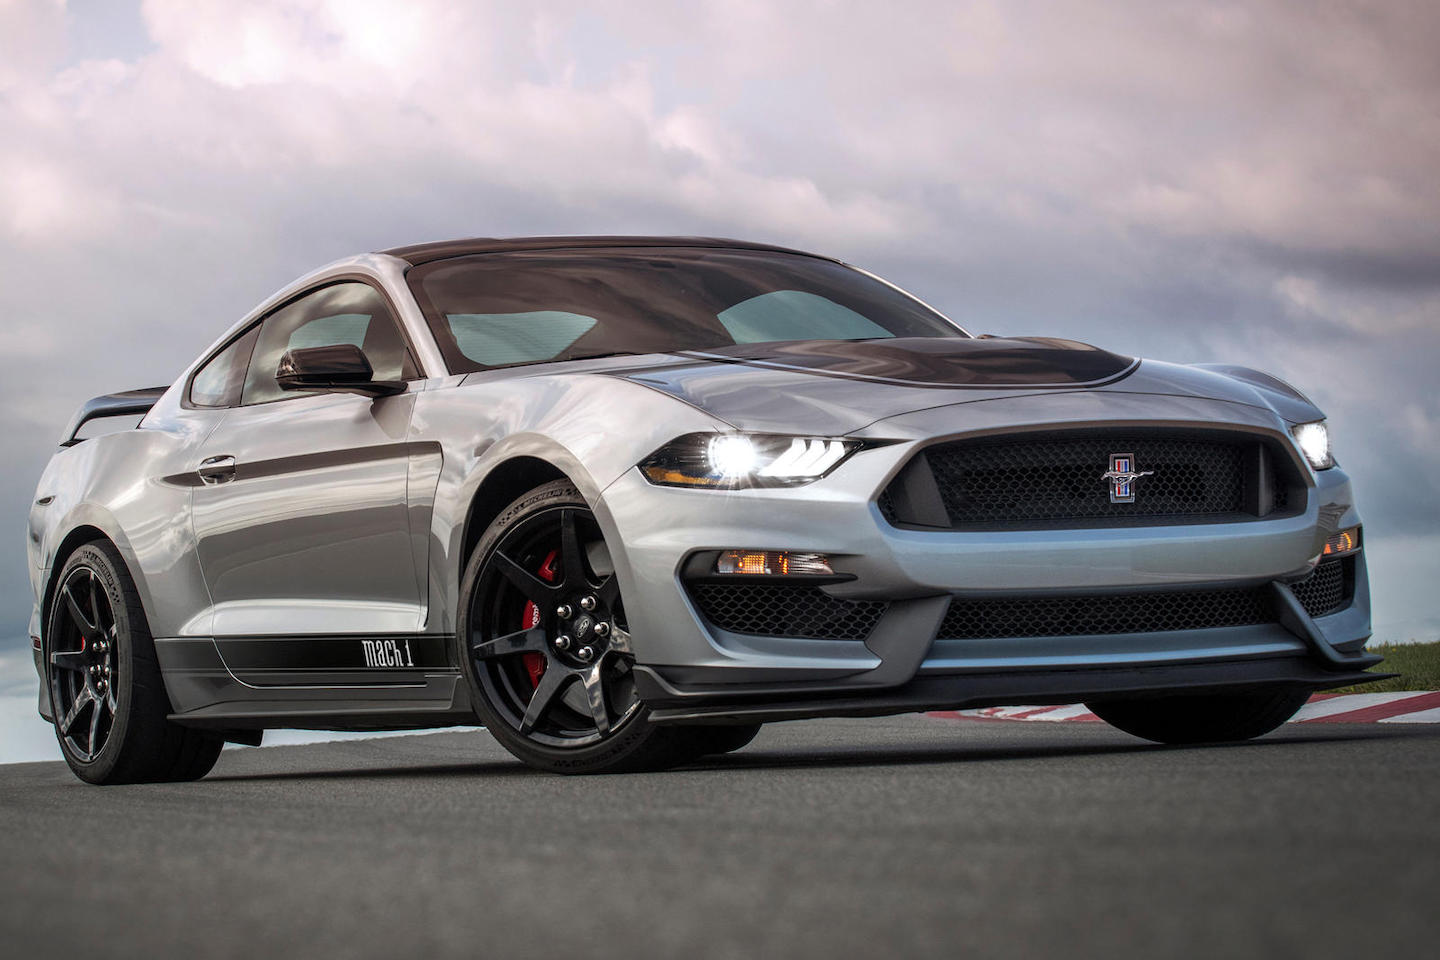 A New Ford Mustang Mach 1 Is Coming Next Year - Motor Illustrated